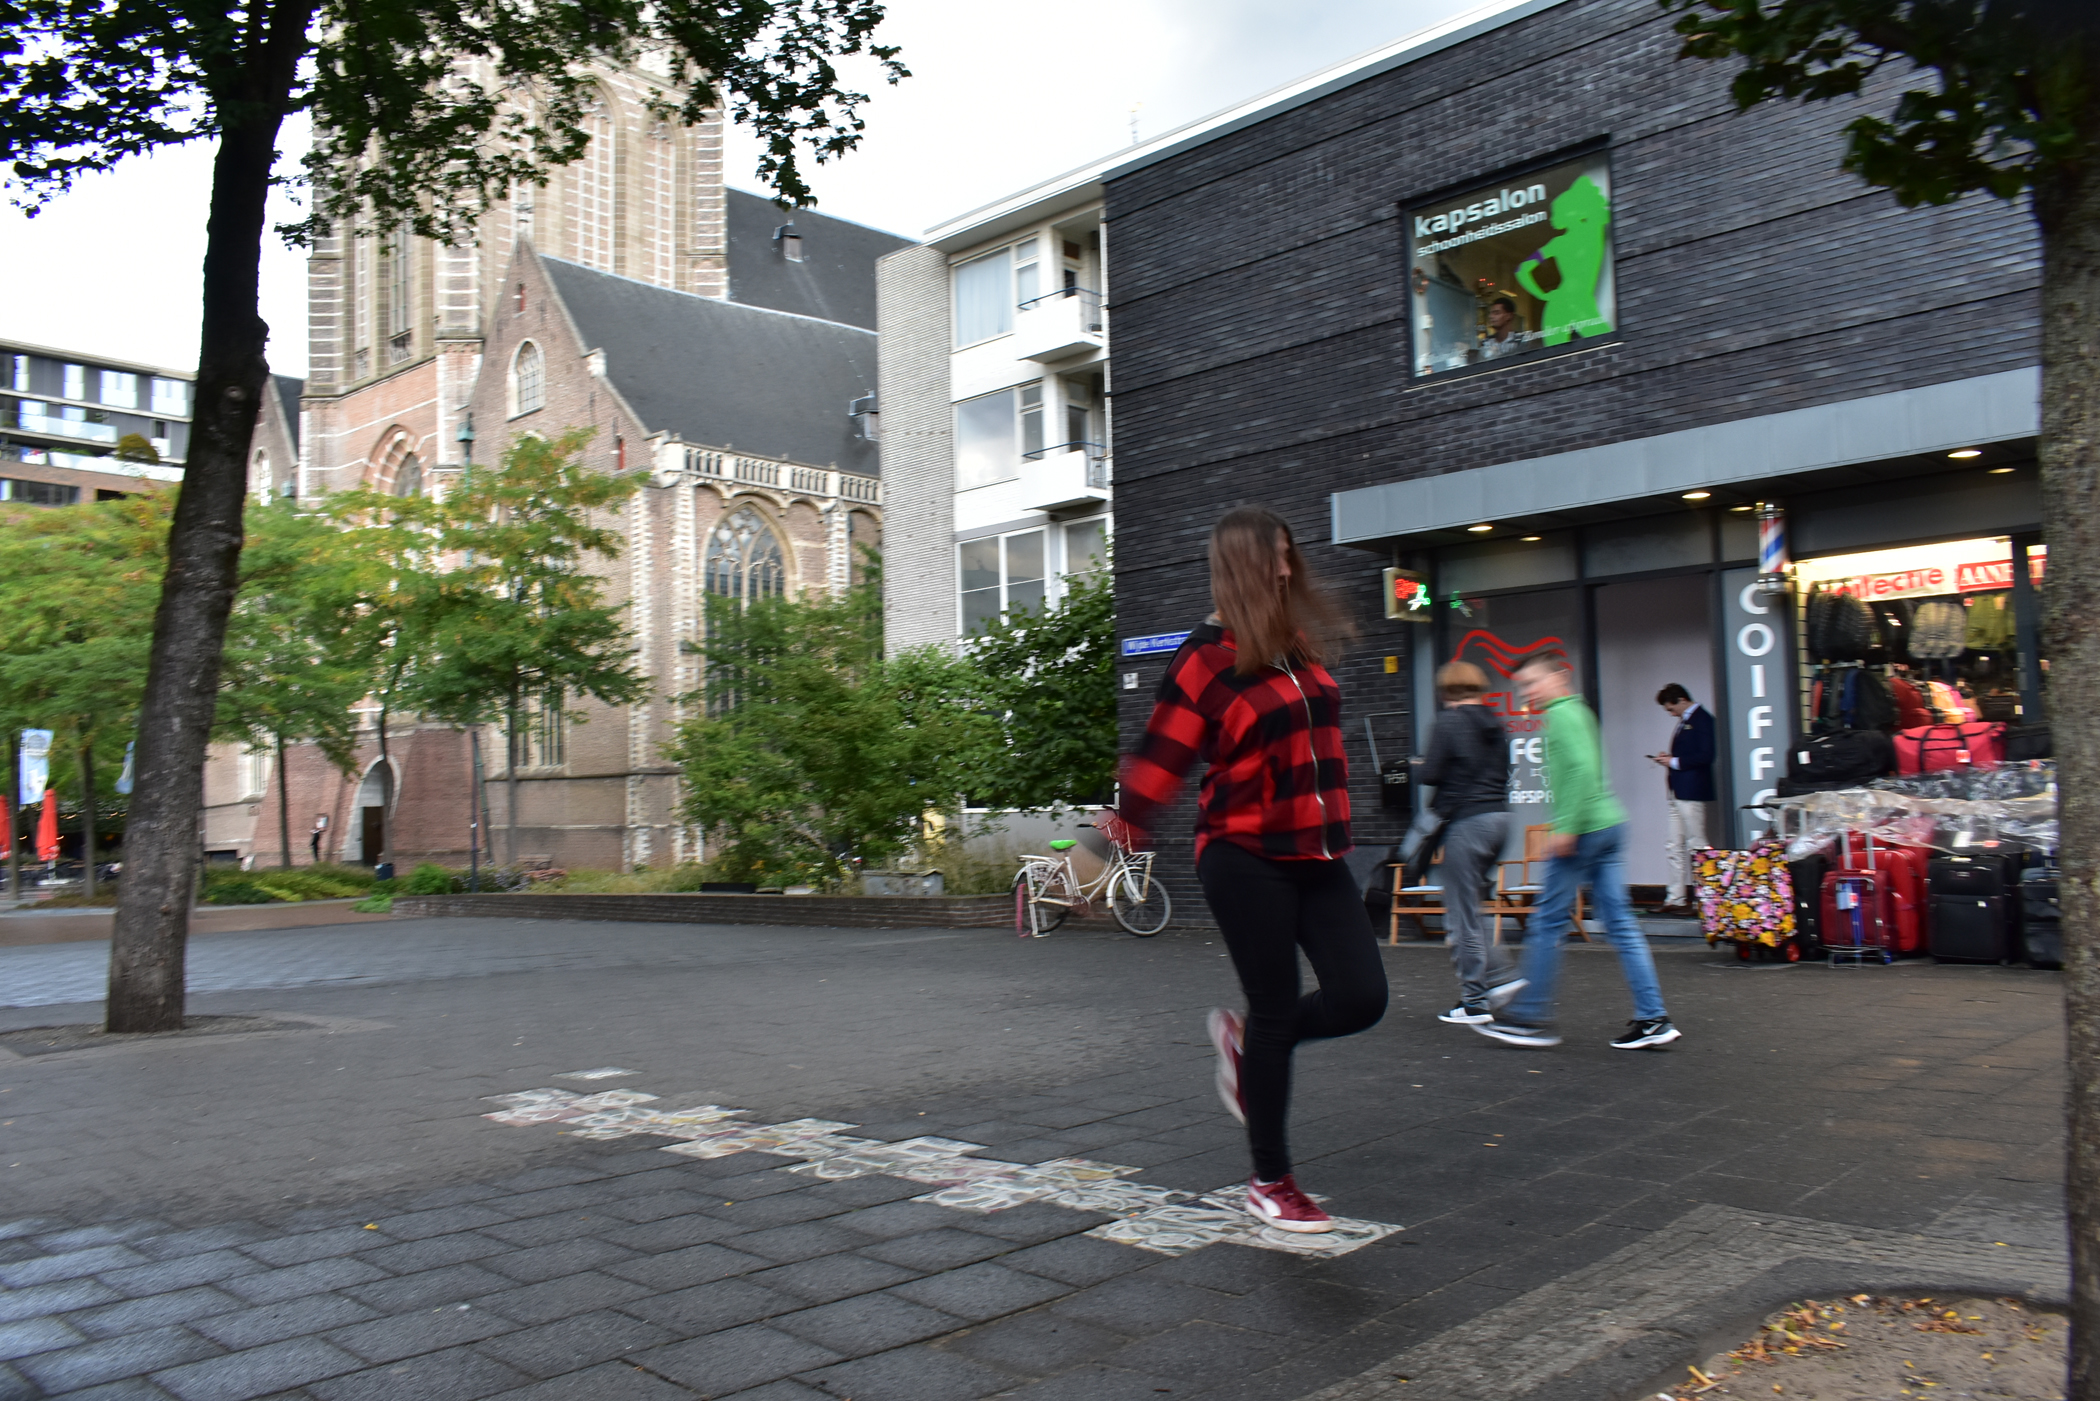 Playing hopscotch in the middle of Rotterdam town centre.